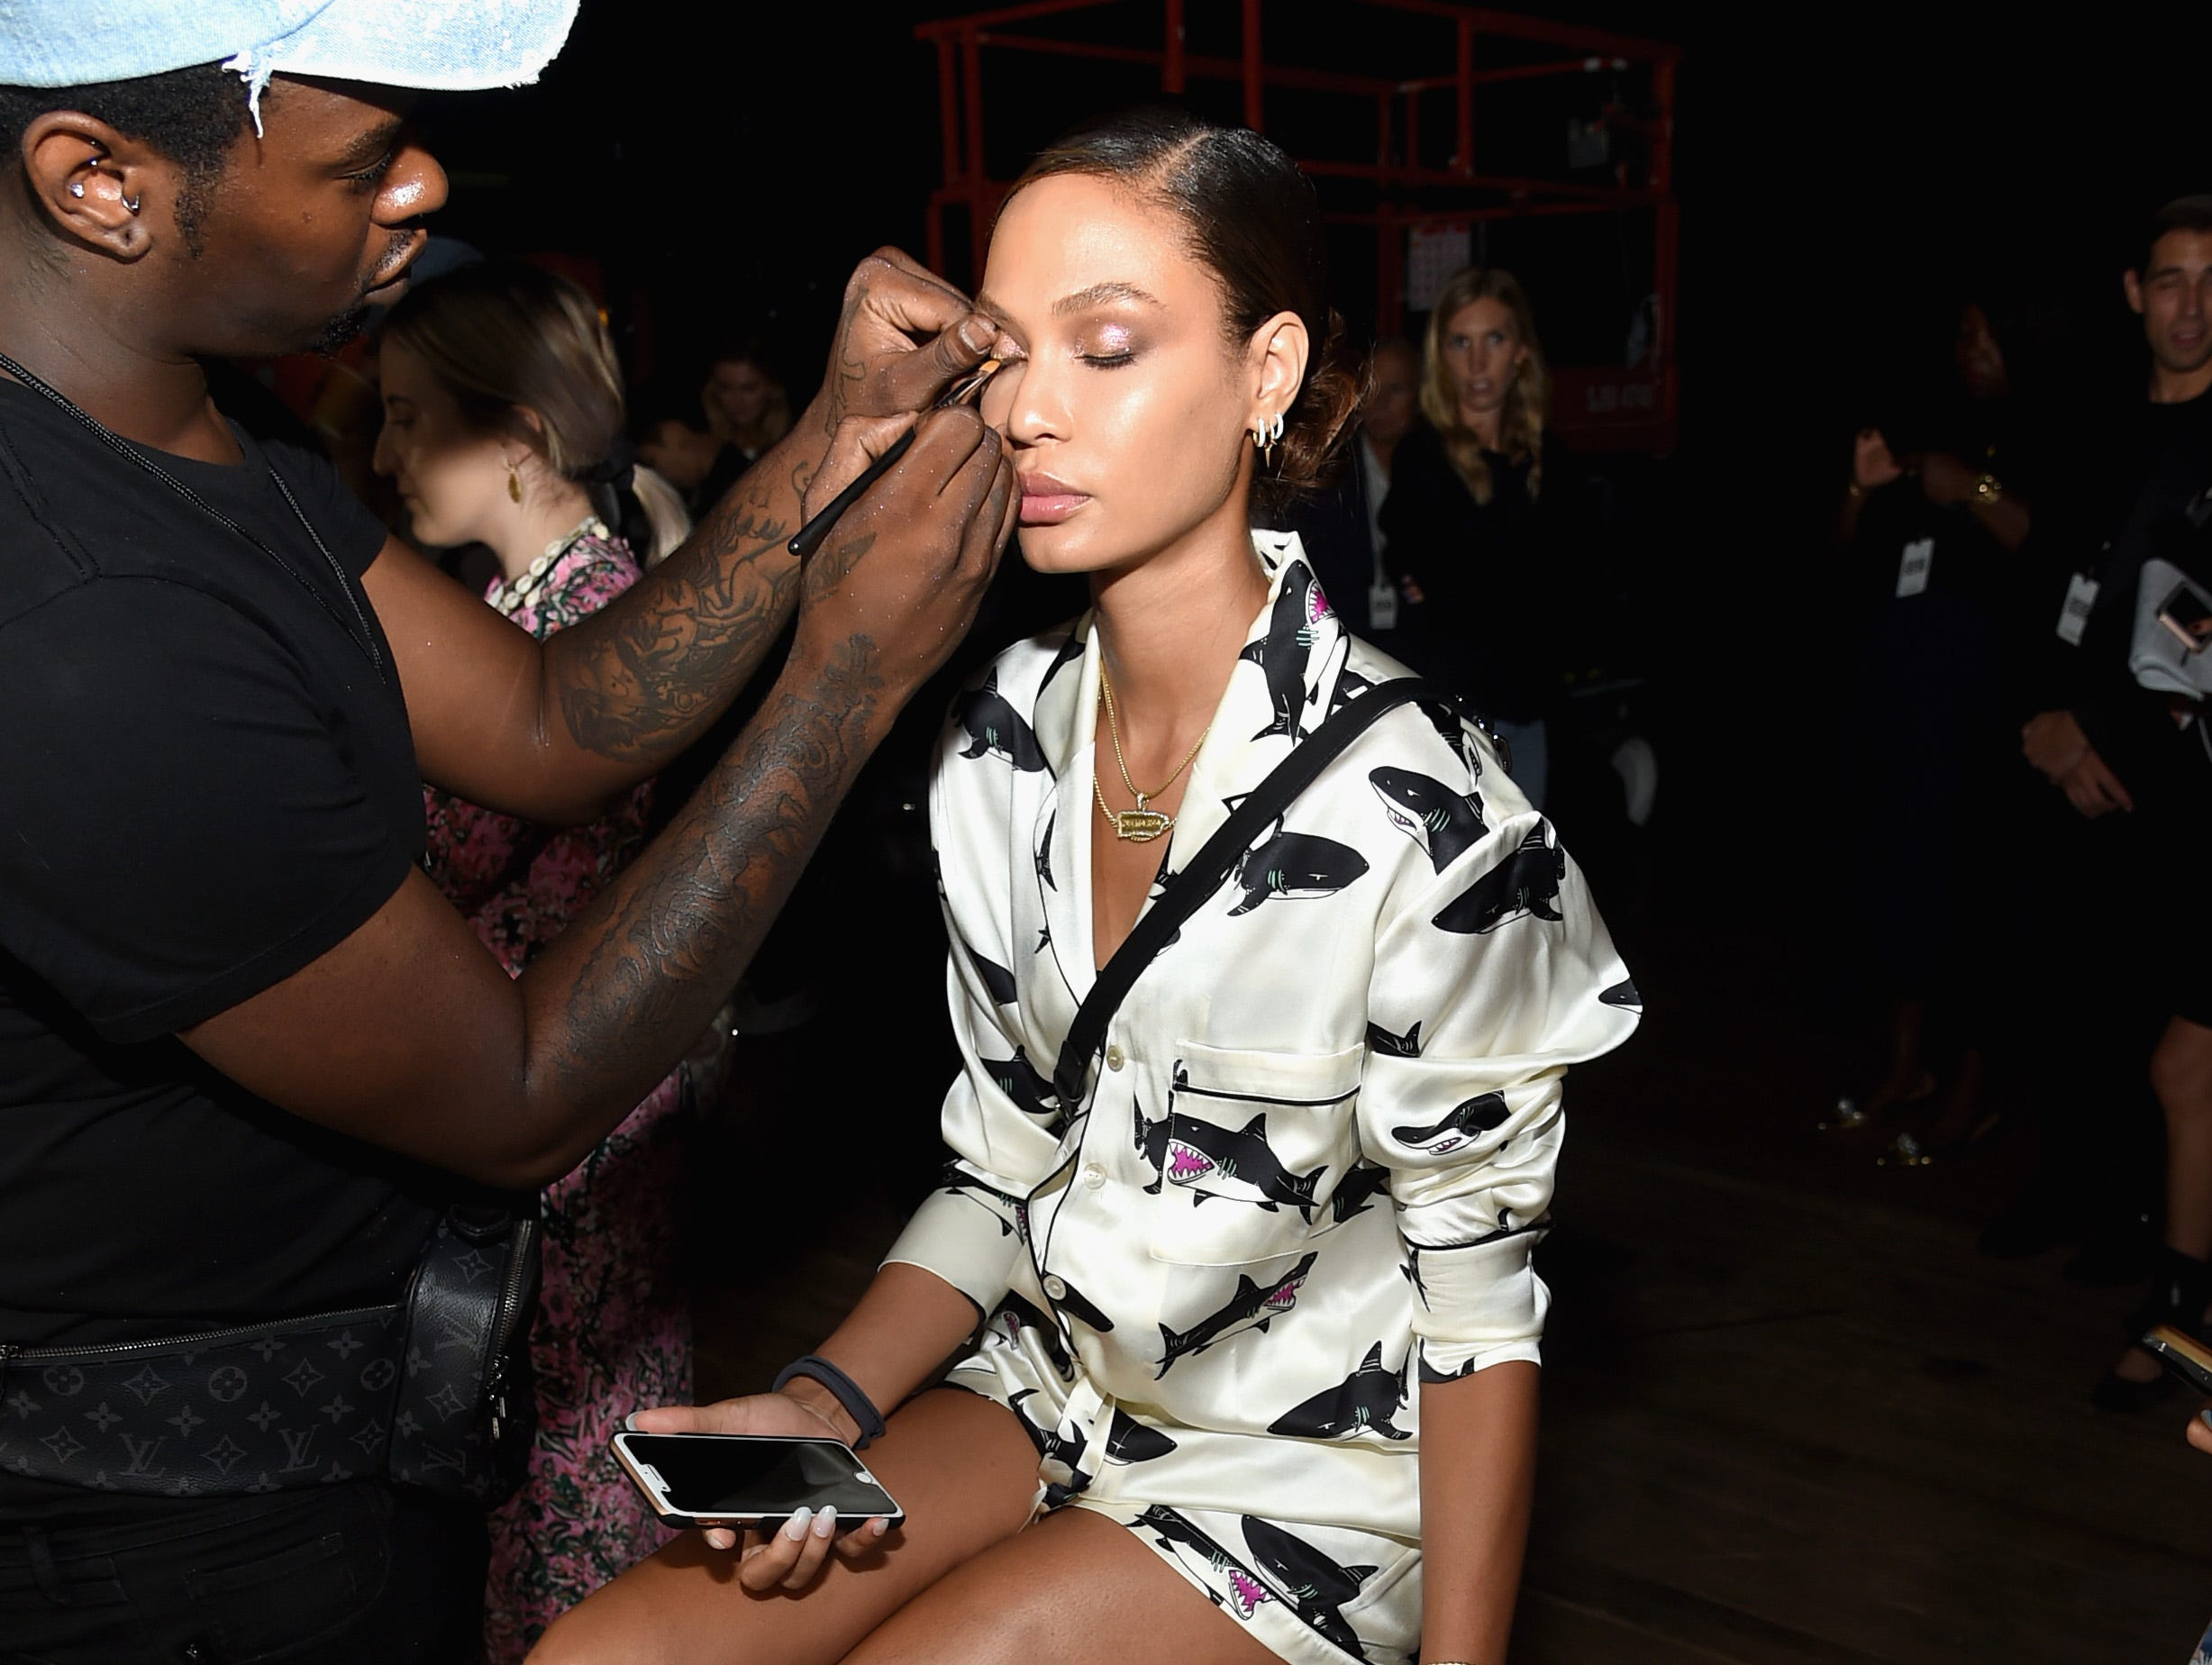 NEW YORK, NY - SEPTEMBER 05:  Joan Smalls prepares backstage at the Tom Ford fashion show during New York Fashion Week at Park Avenue Armory on September 5, 2018 in New York City.  (Photo by Jamie McCarthy/Getty Images) ORG XMIT: 775216224 ORIG FILE ID: 1027430866